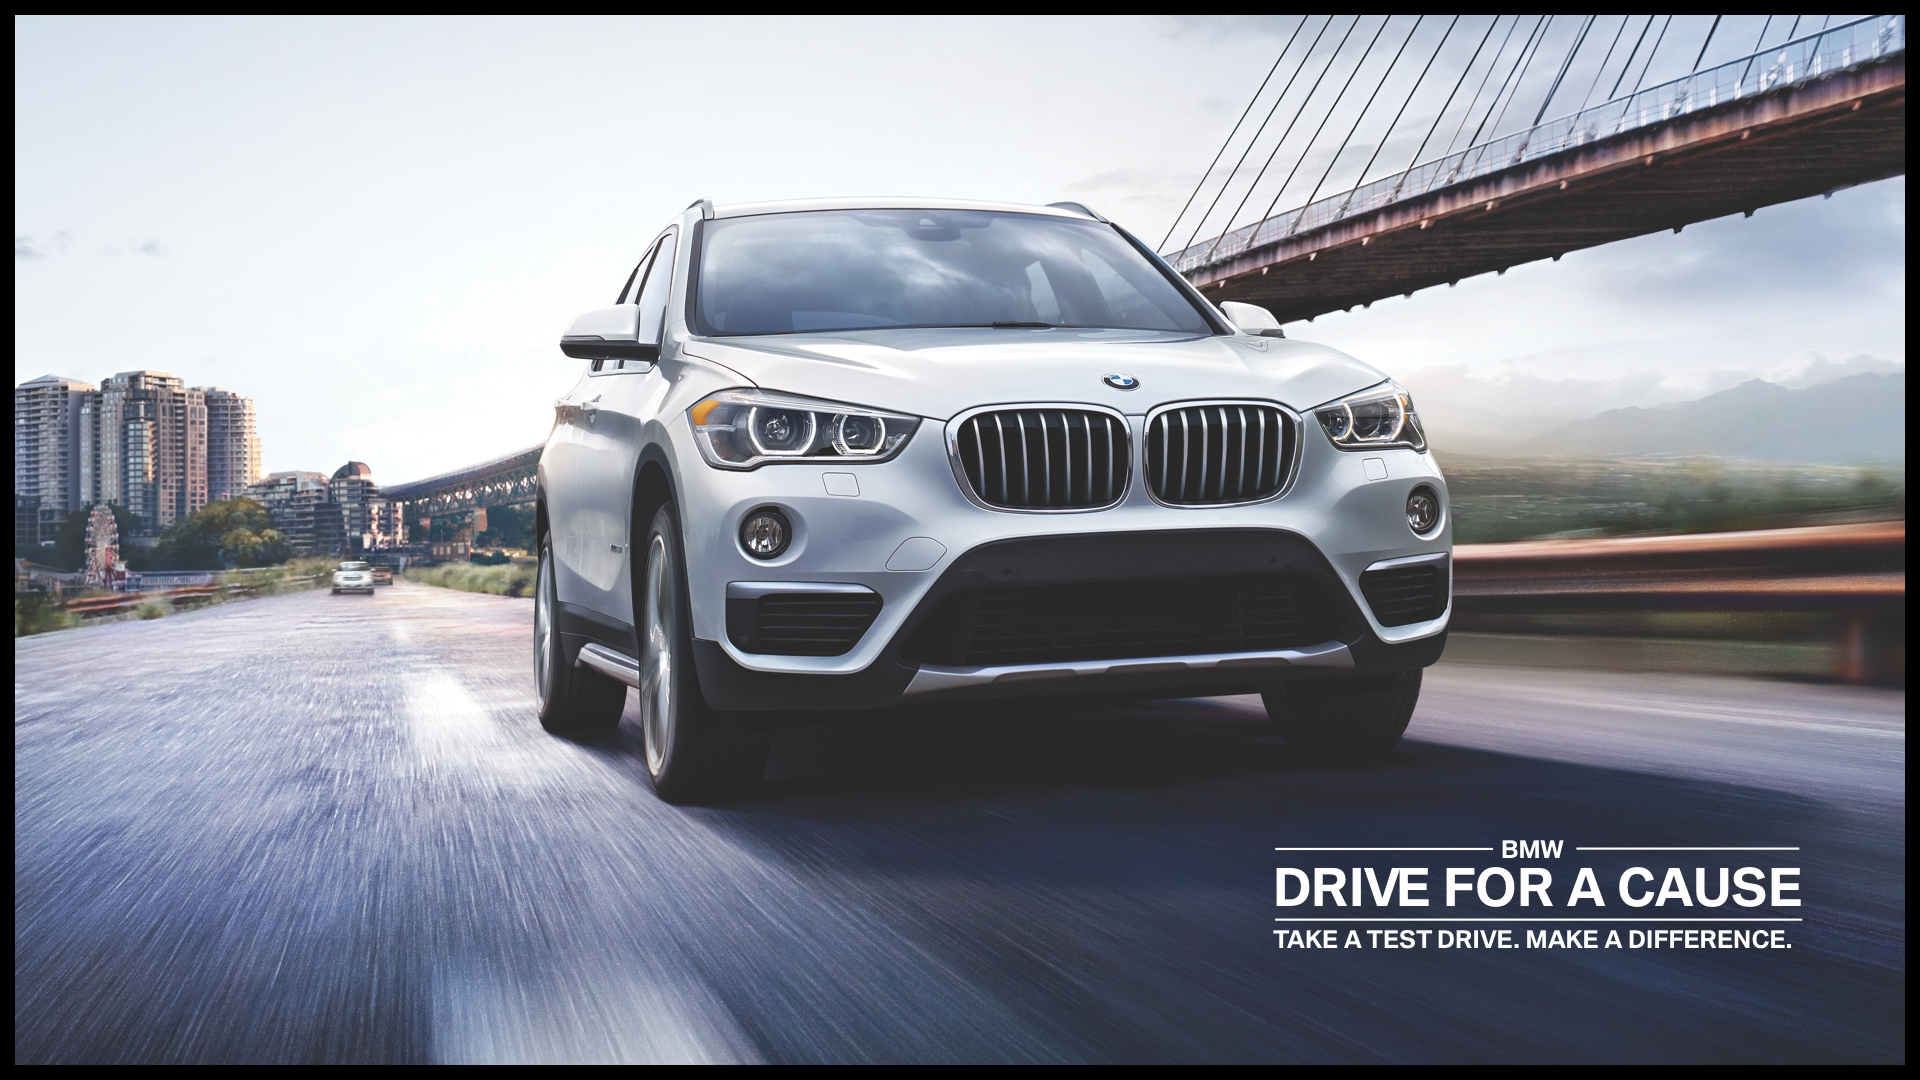 bmw drive for a cause 1b